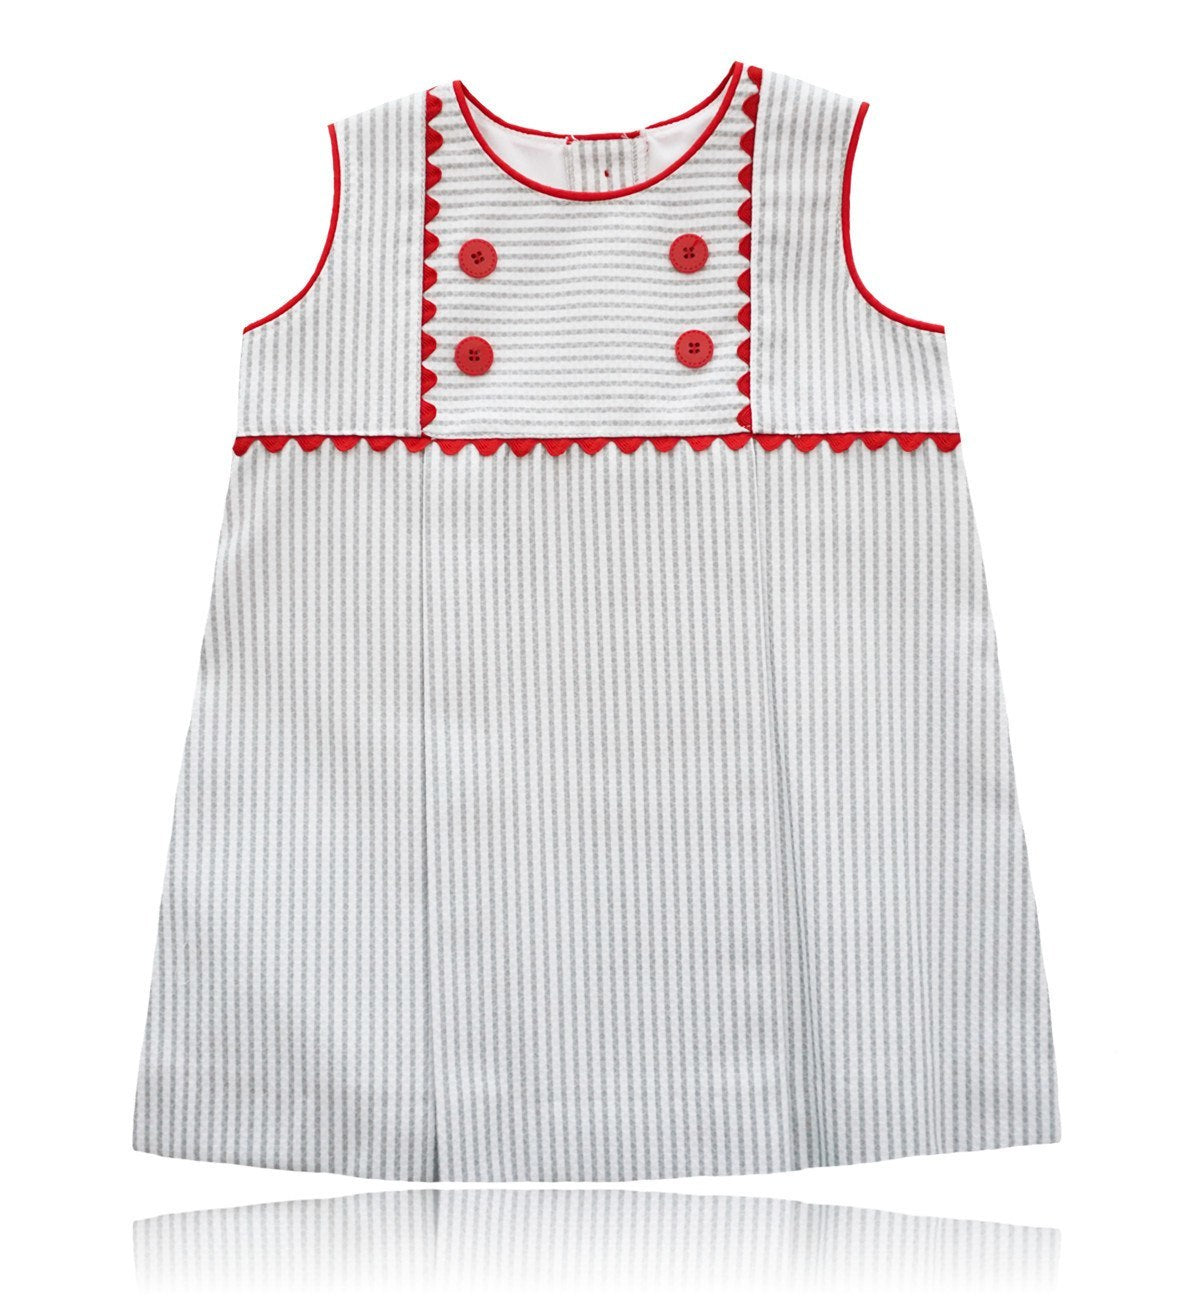 Spanish baby clothes | baby Dress | White & grey striped dress |babymaC  - 1